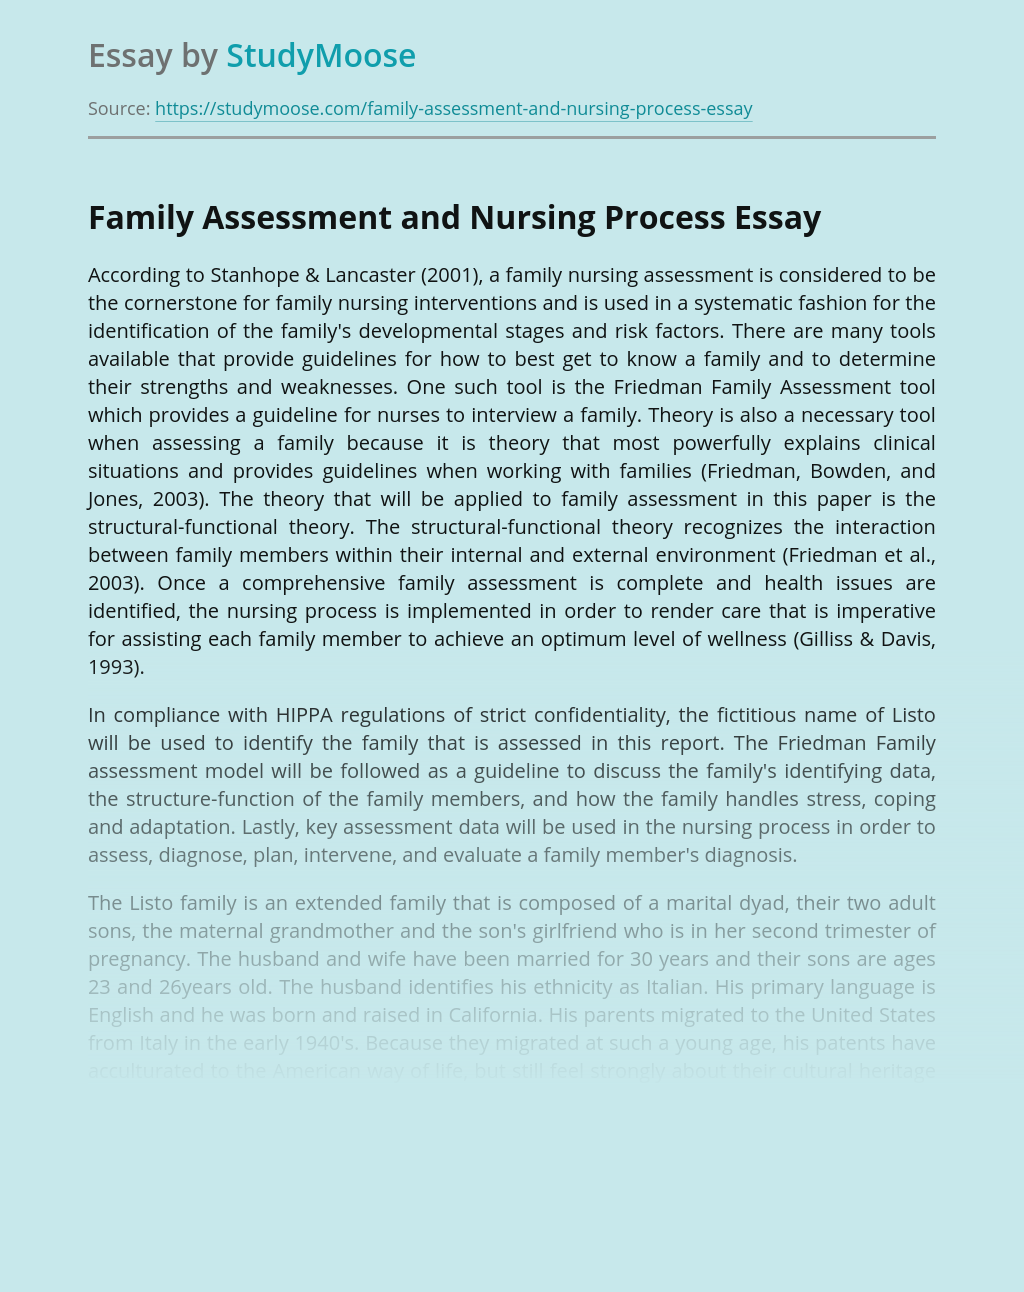 Family Assessment and Nursing Process